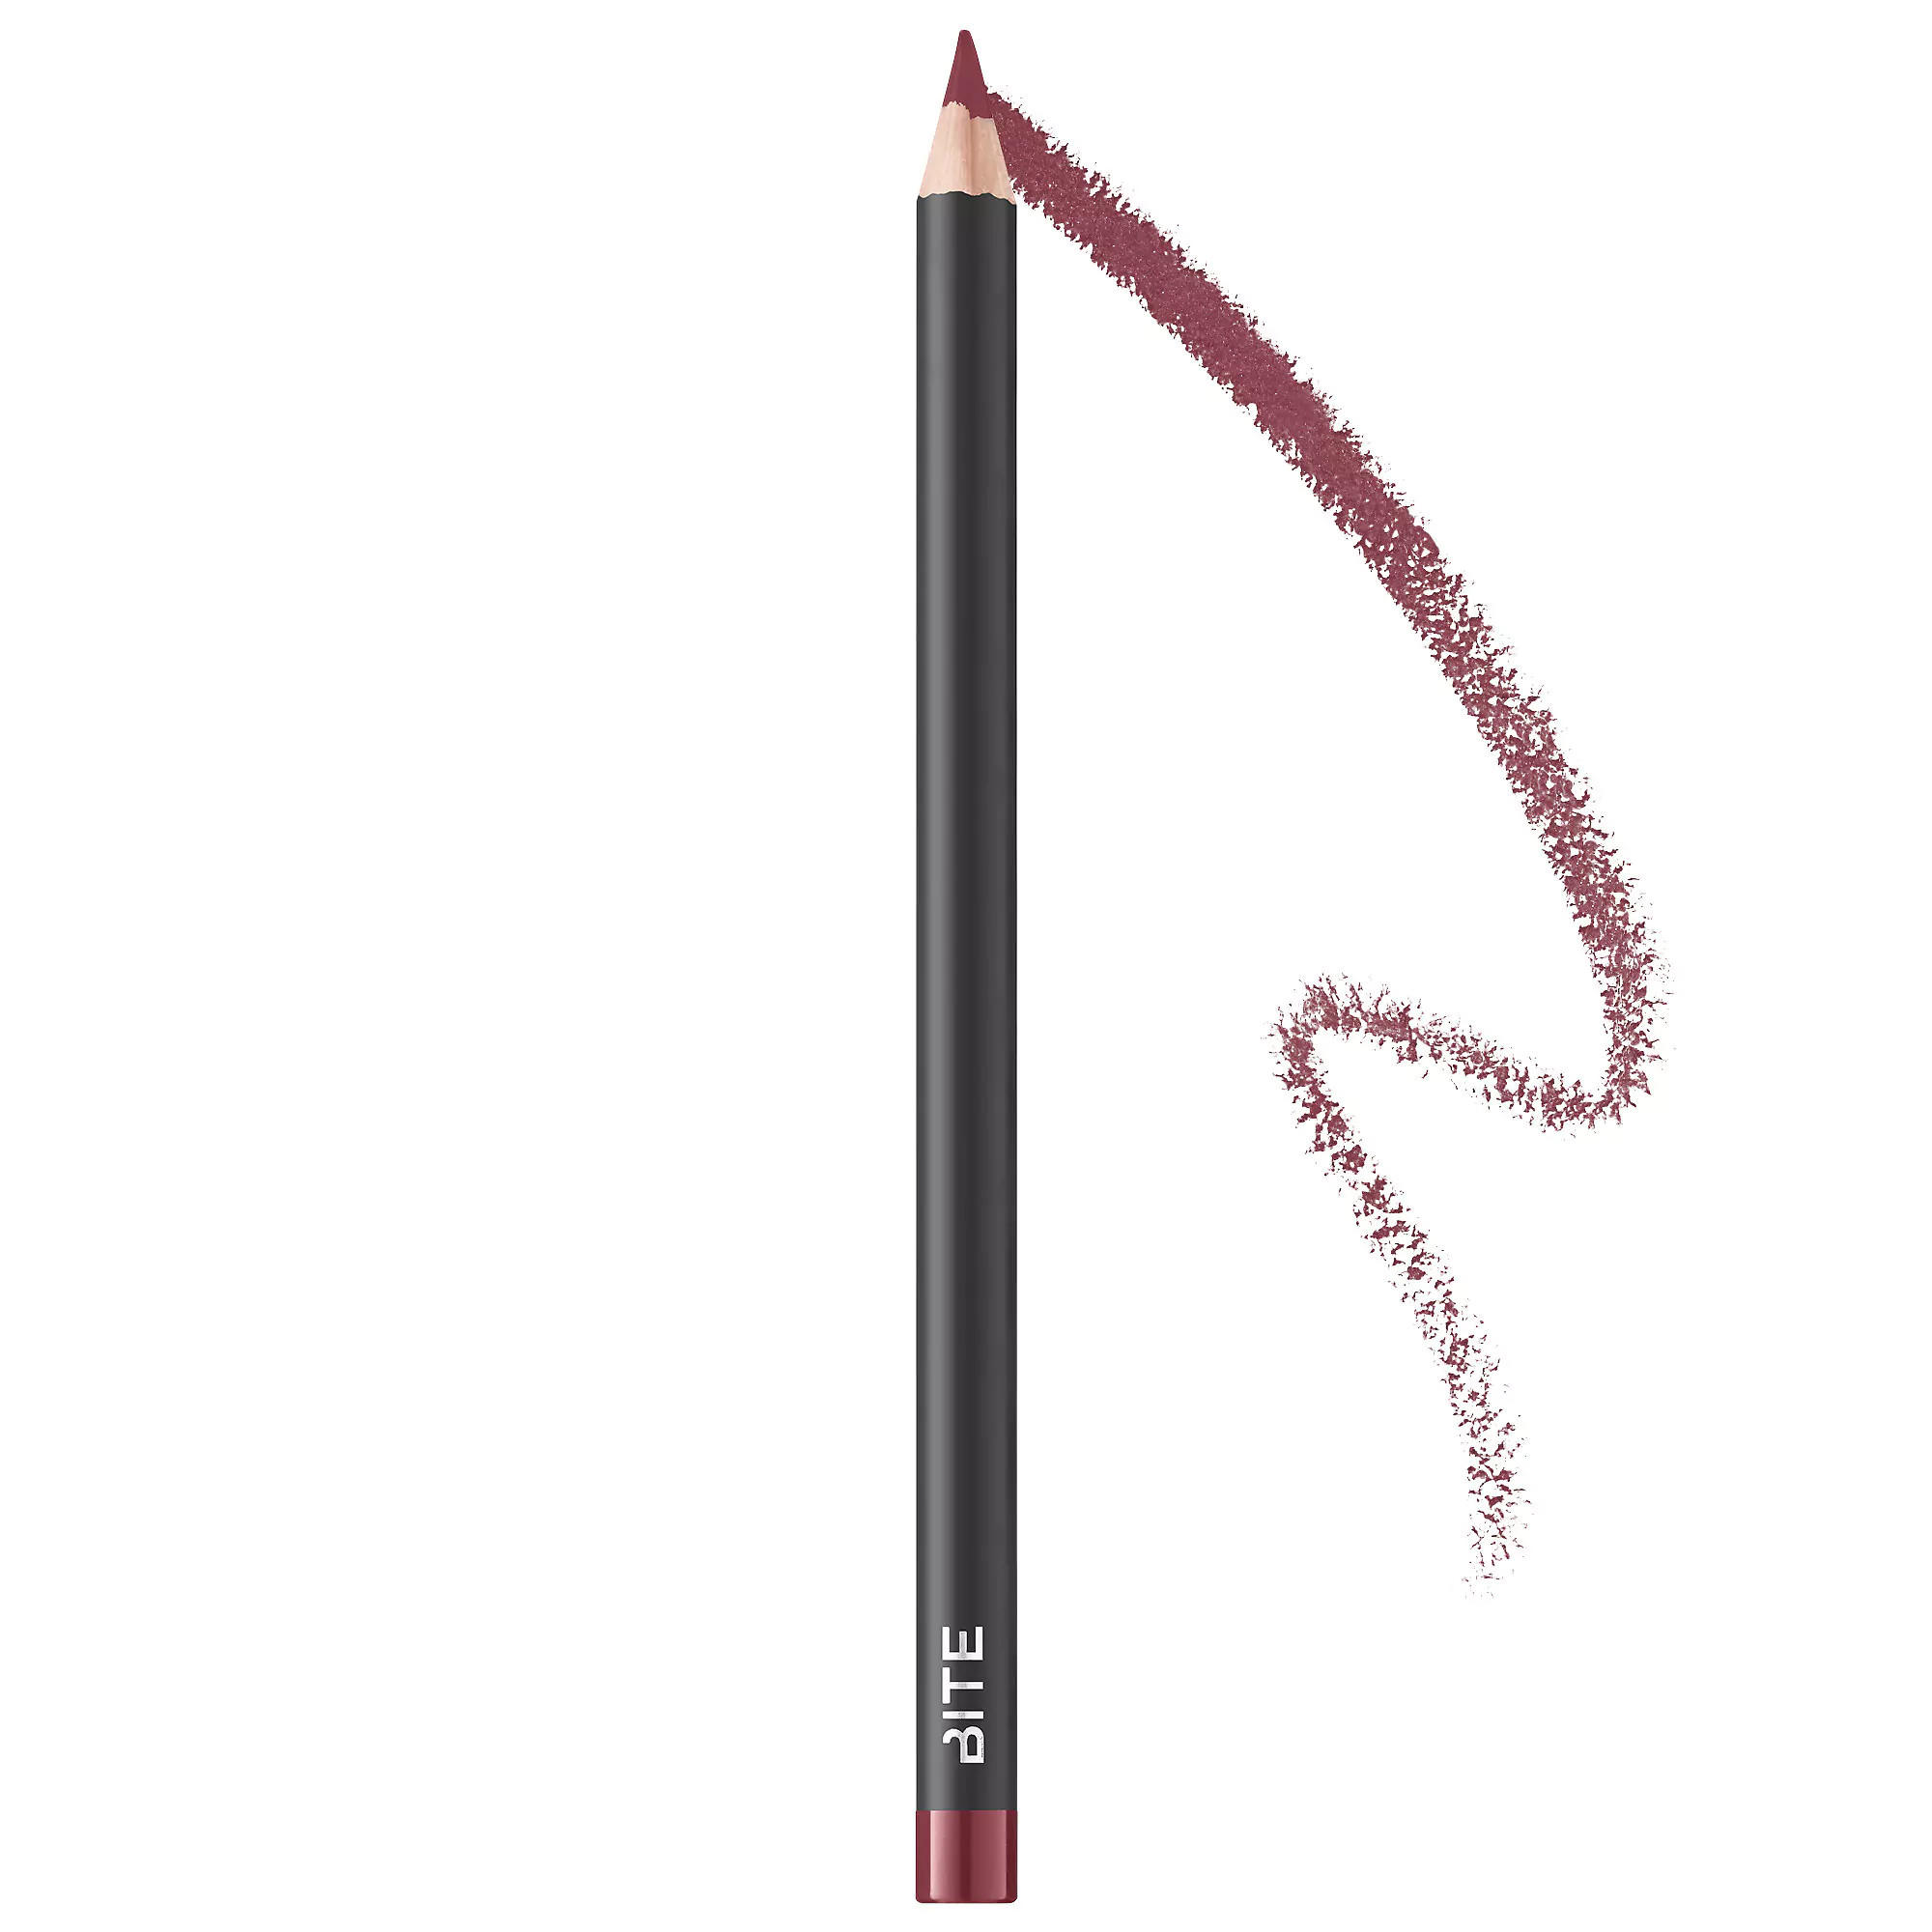 Bite Beauty The Lip Pencil Mauve Brown 032